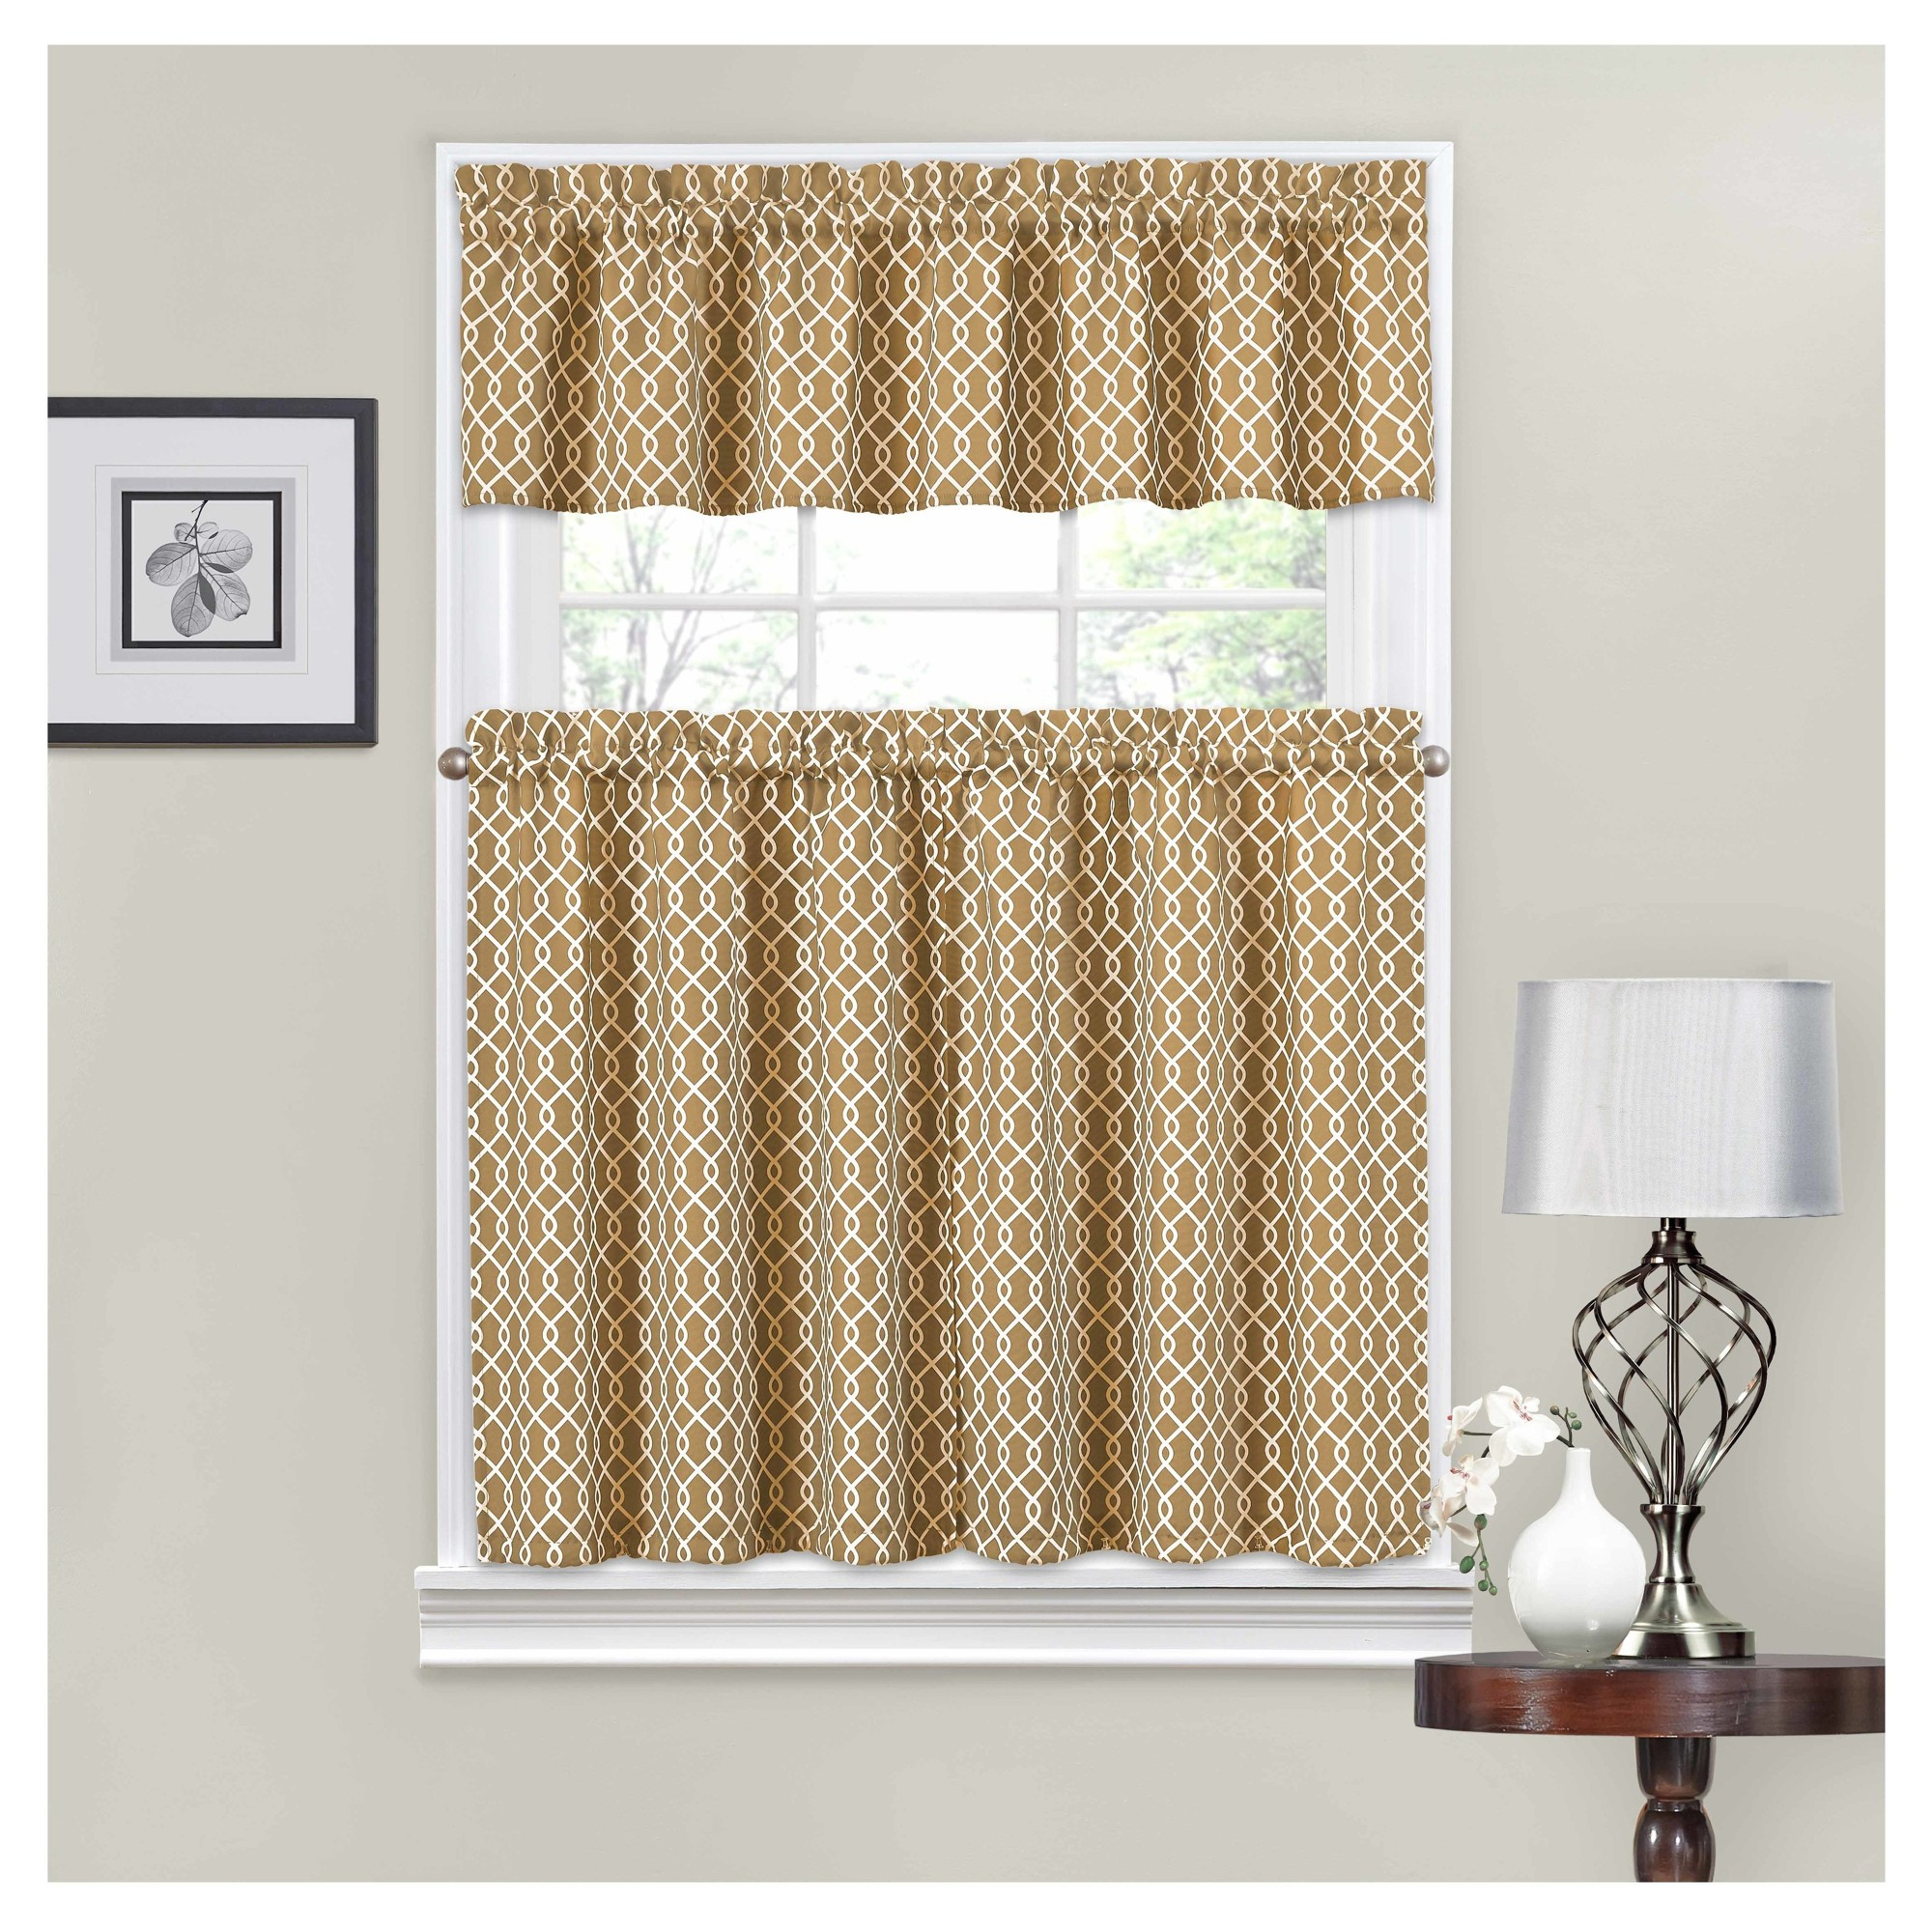 Curtain Tiers Traditions Bywaverly Blue Ivory Trellis Within Geometric Print Microfiber 3 Piece Kitchen Curtain Valance And Tiers Sets (View 10 of 20)